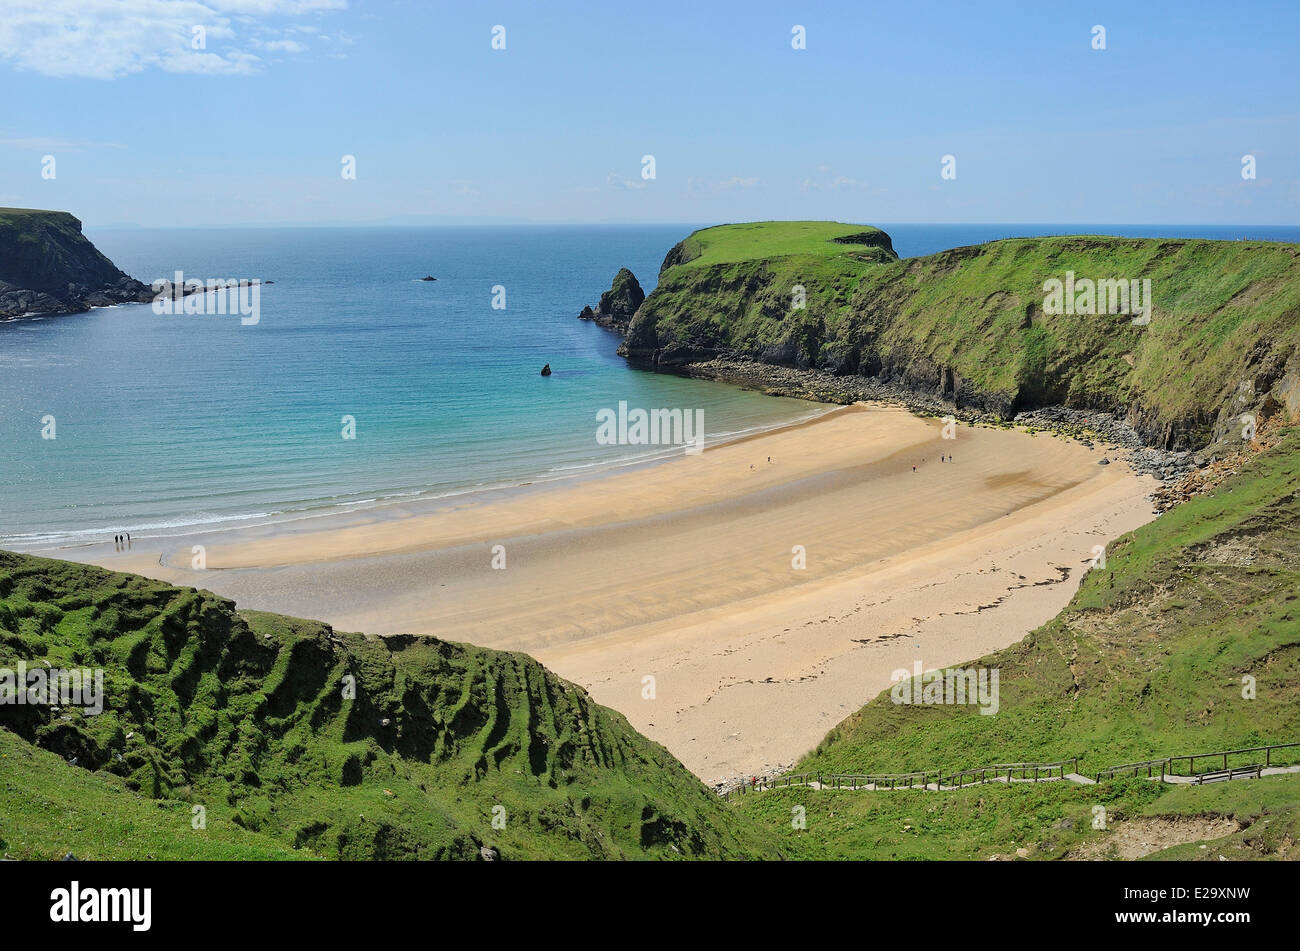 Ireland, County Donegal, Malin Beg beach - Stock Image